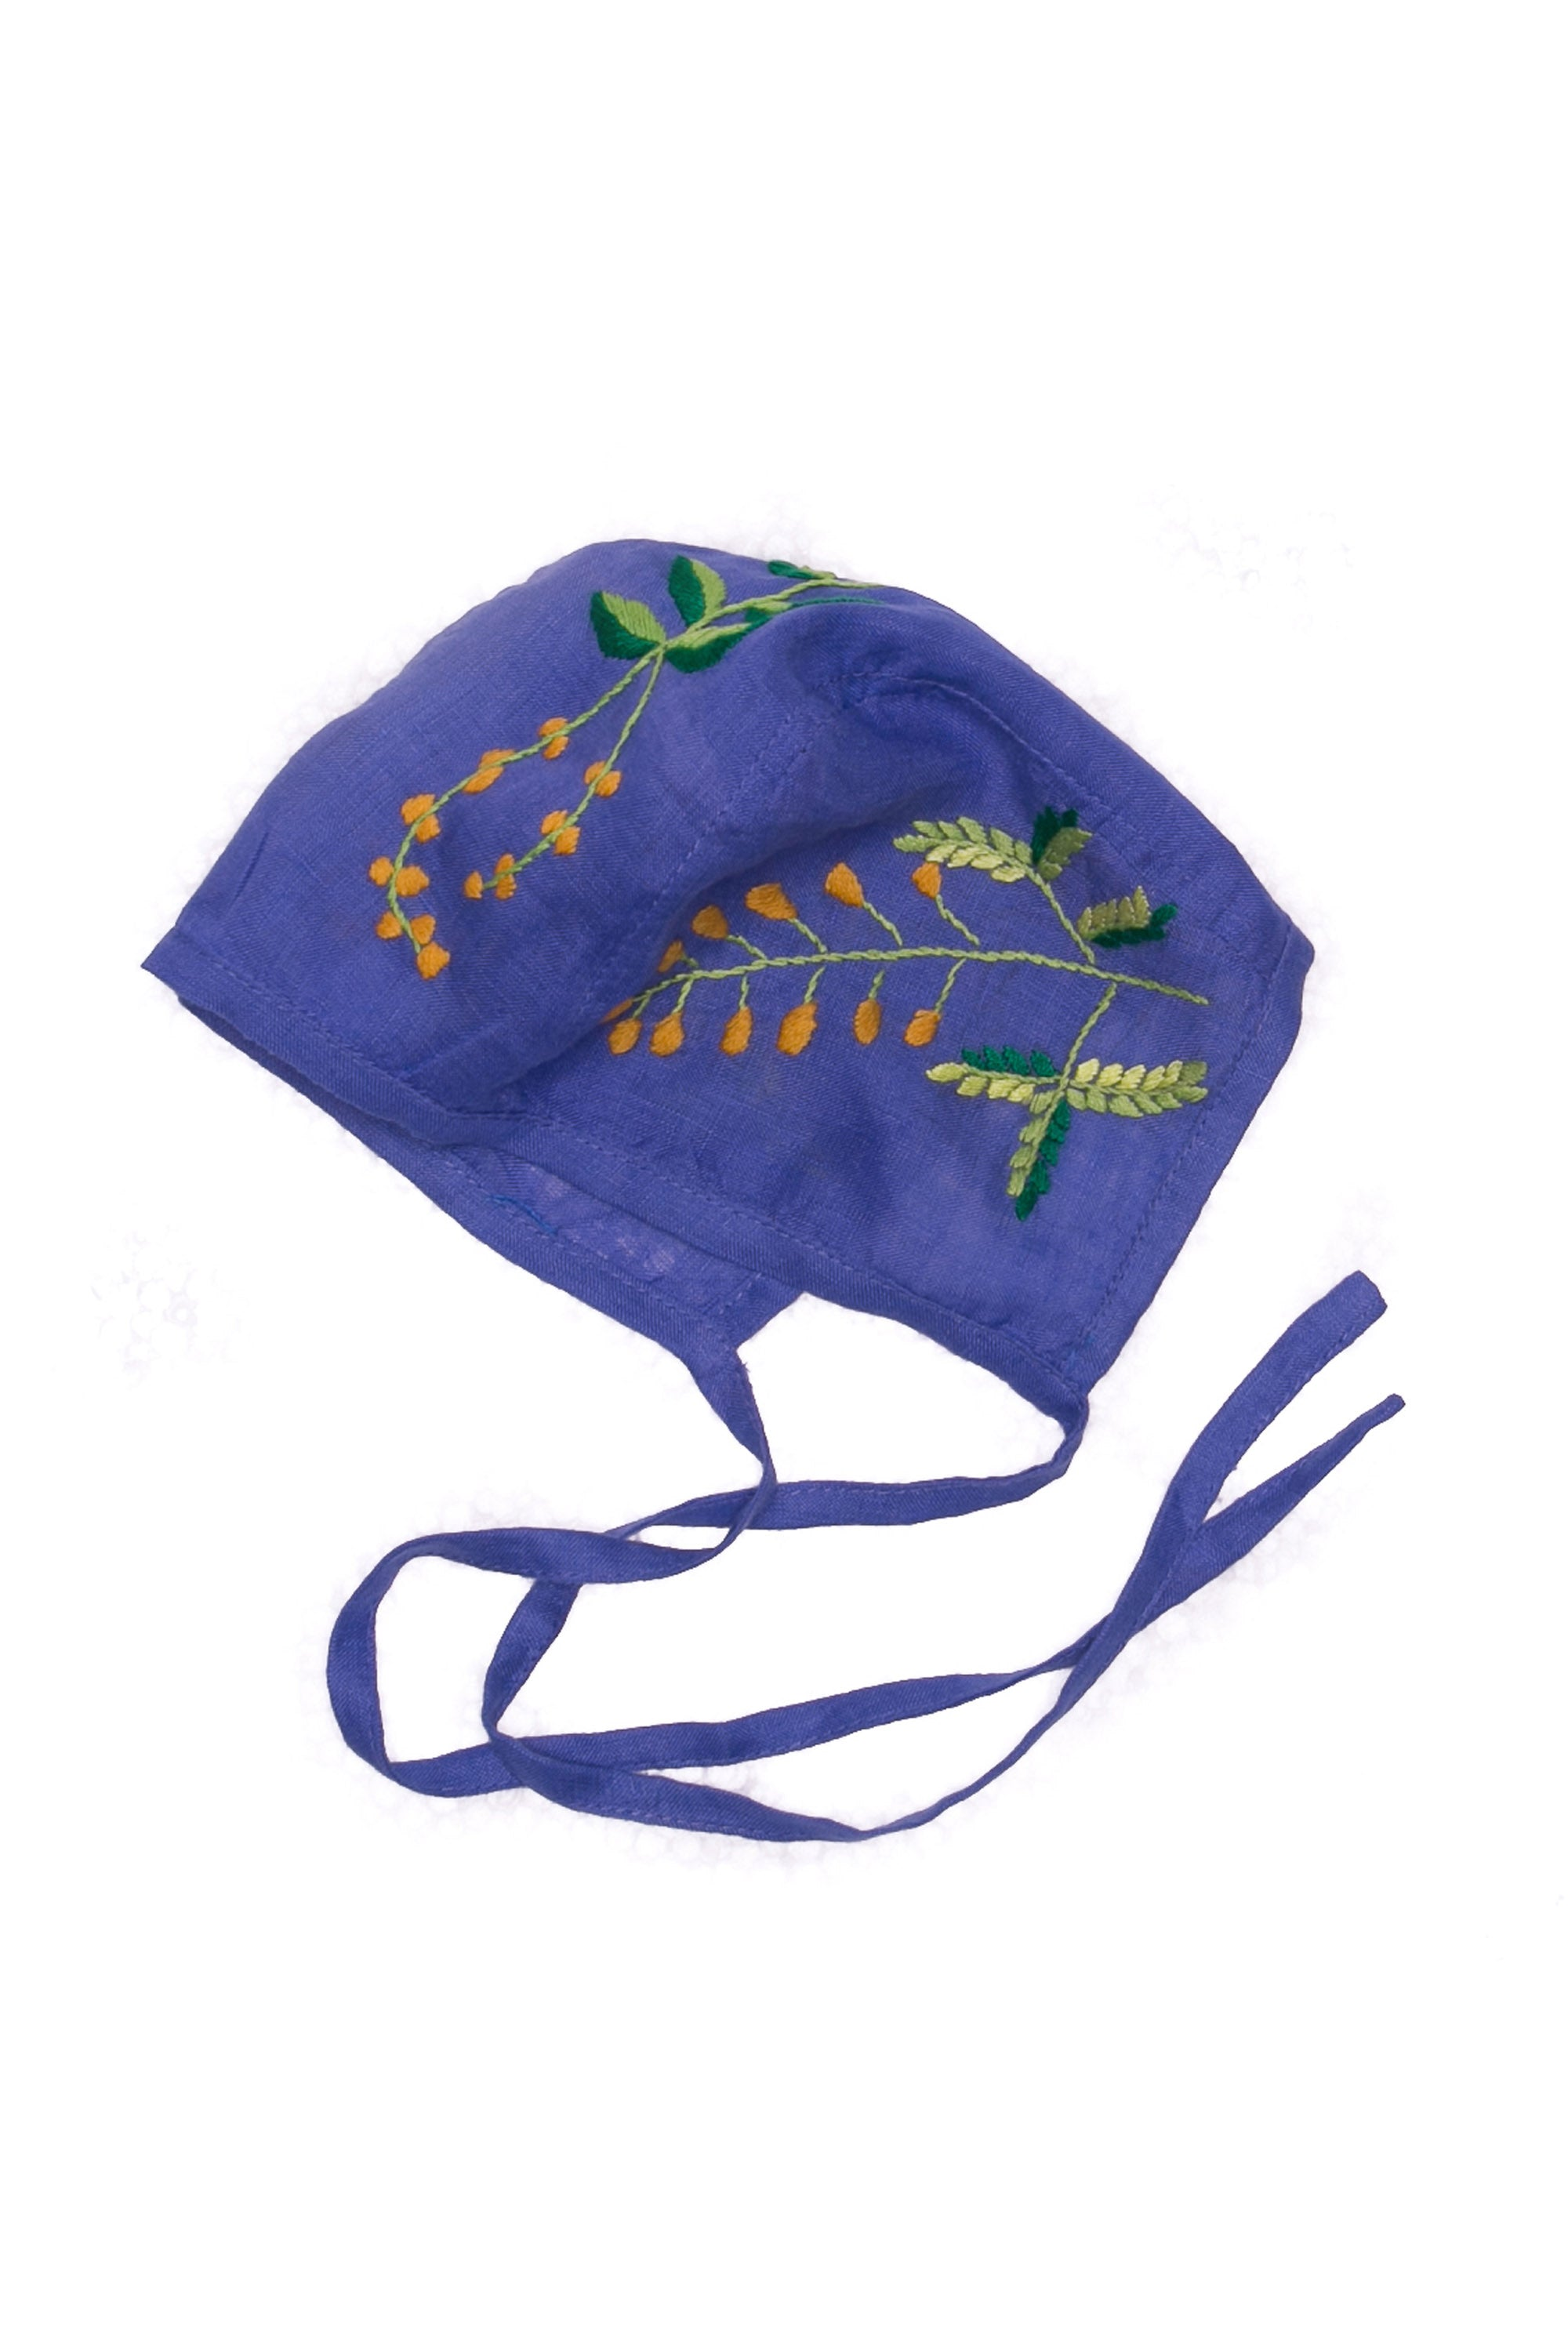 Bonnet Linen Sapphire with Hand Embroidery